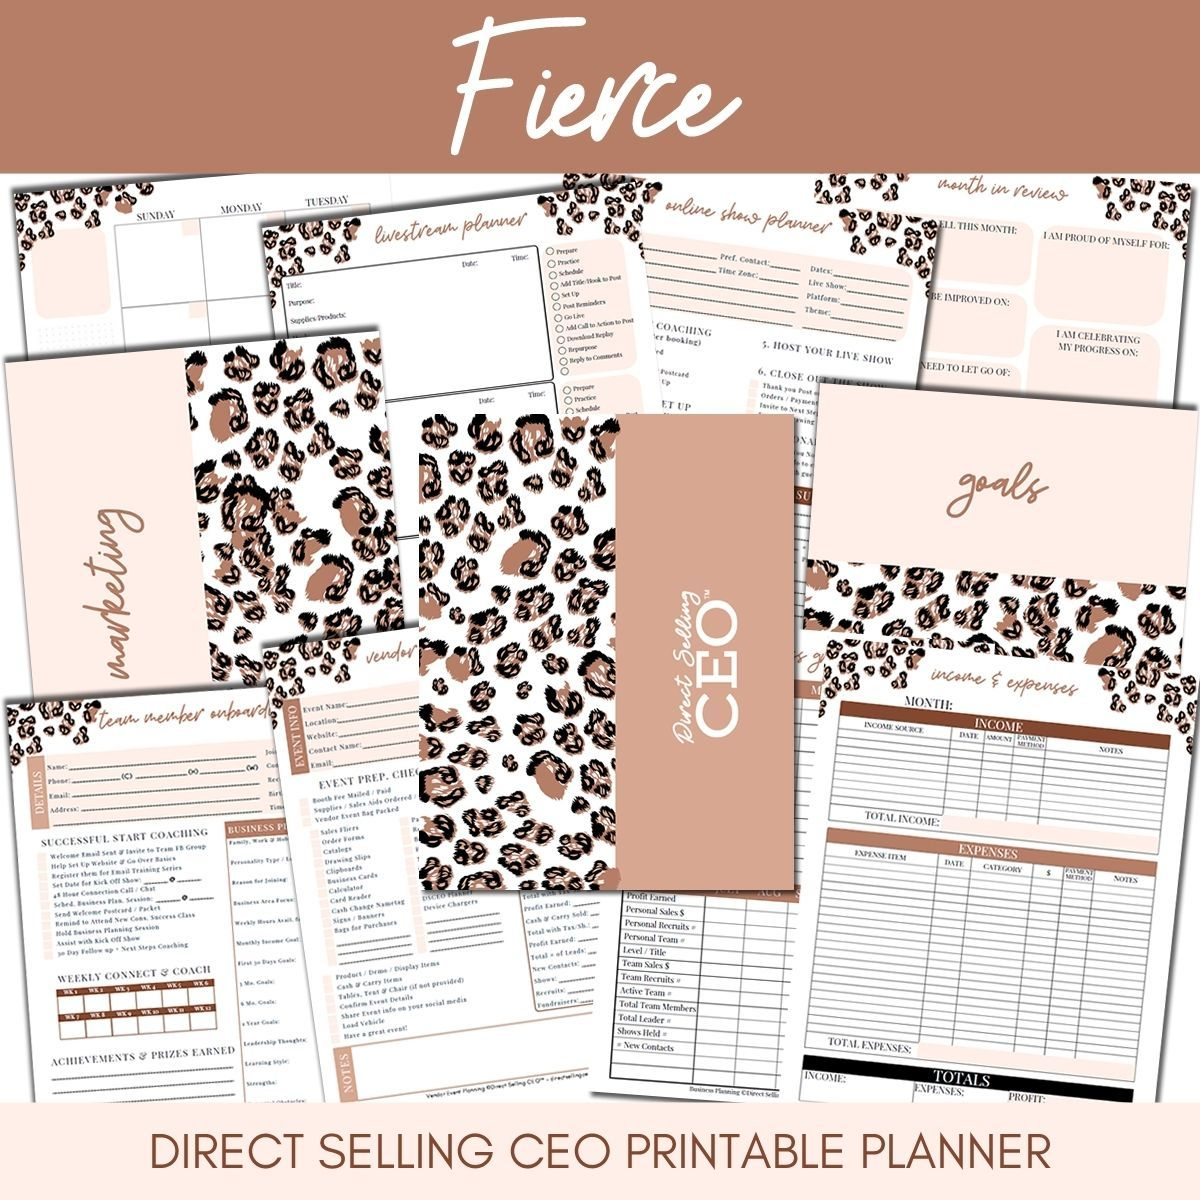 Fierce Direct Selling CEO Printable Planner